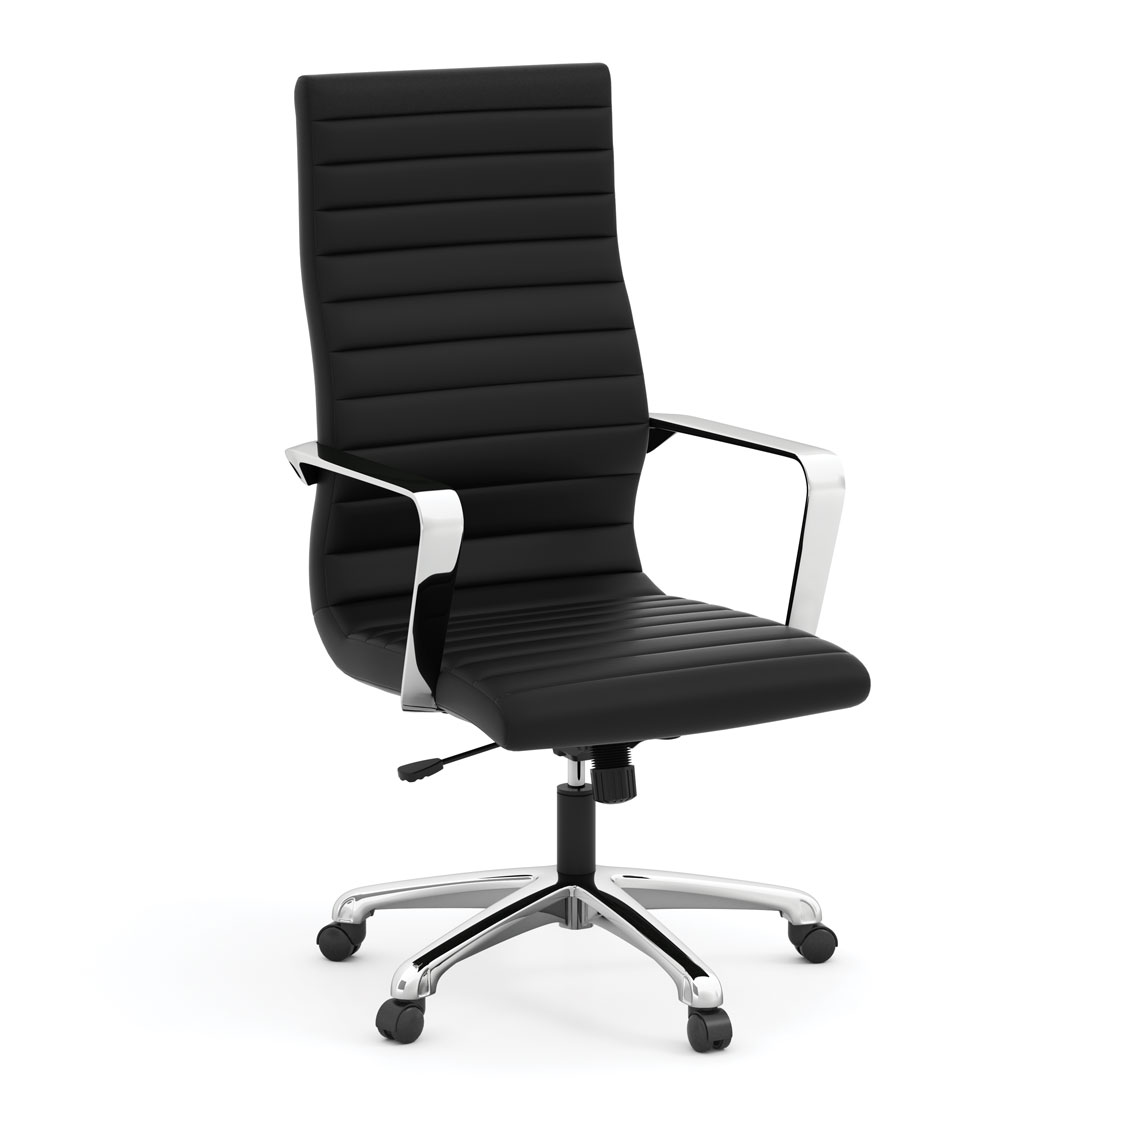 OfficeSource Tre Lite Collection Executive High Back Chair with Chrome Frame